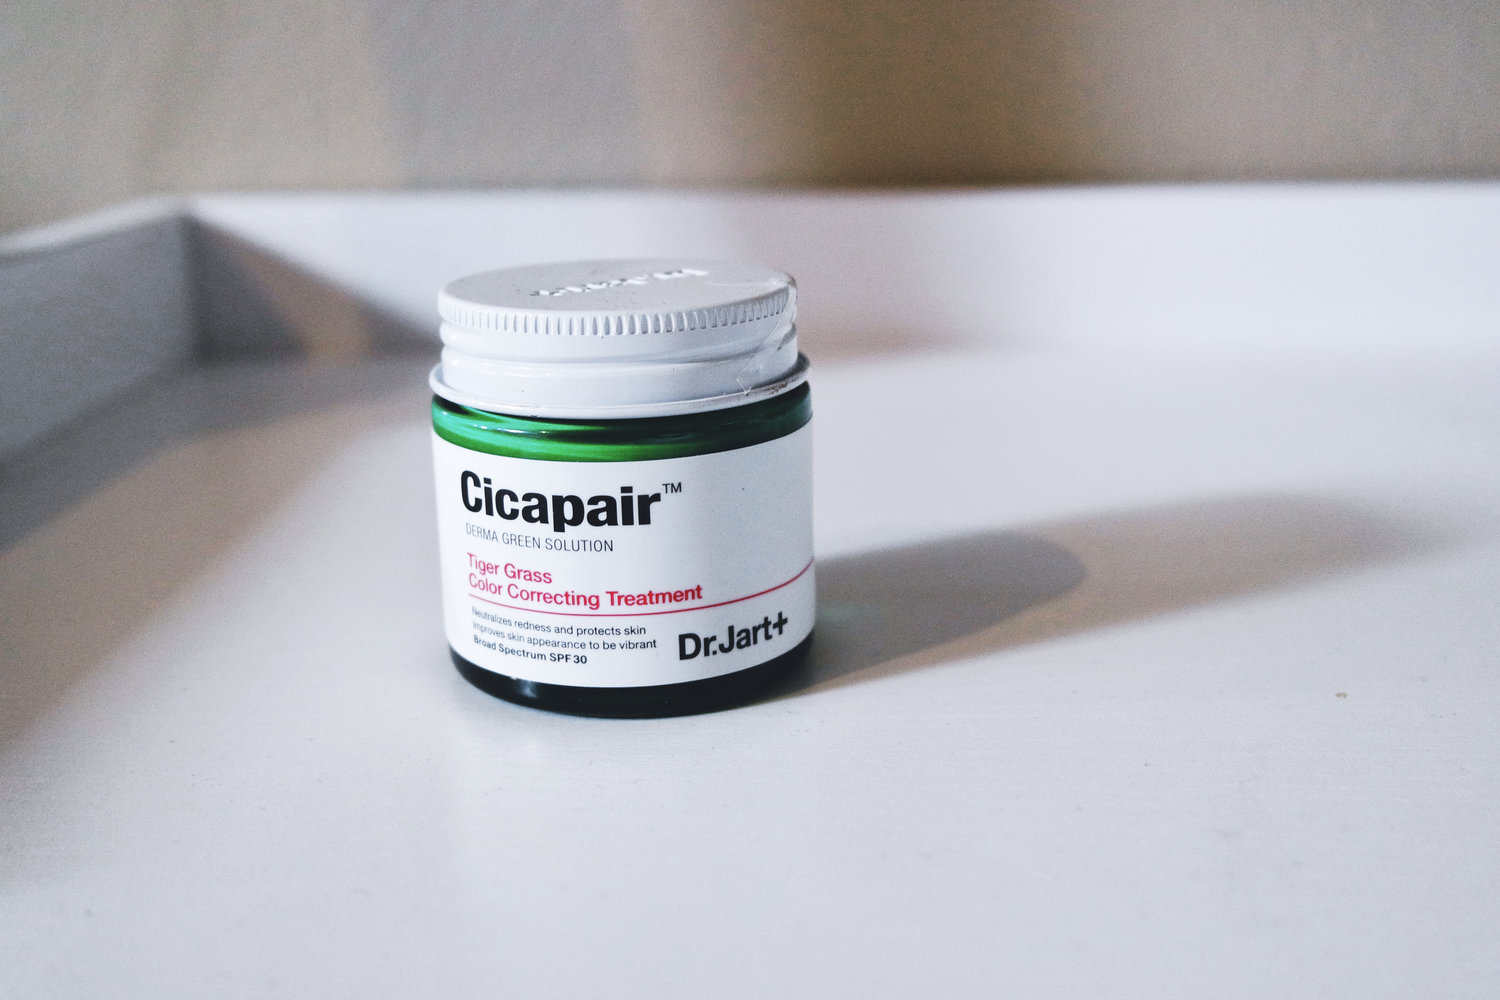 Cicapair Tiger Grass Color Correcting Treatment by Dr Jart+ #11